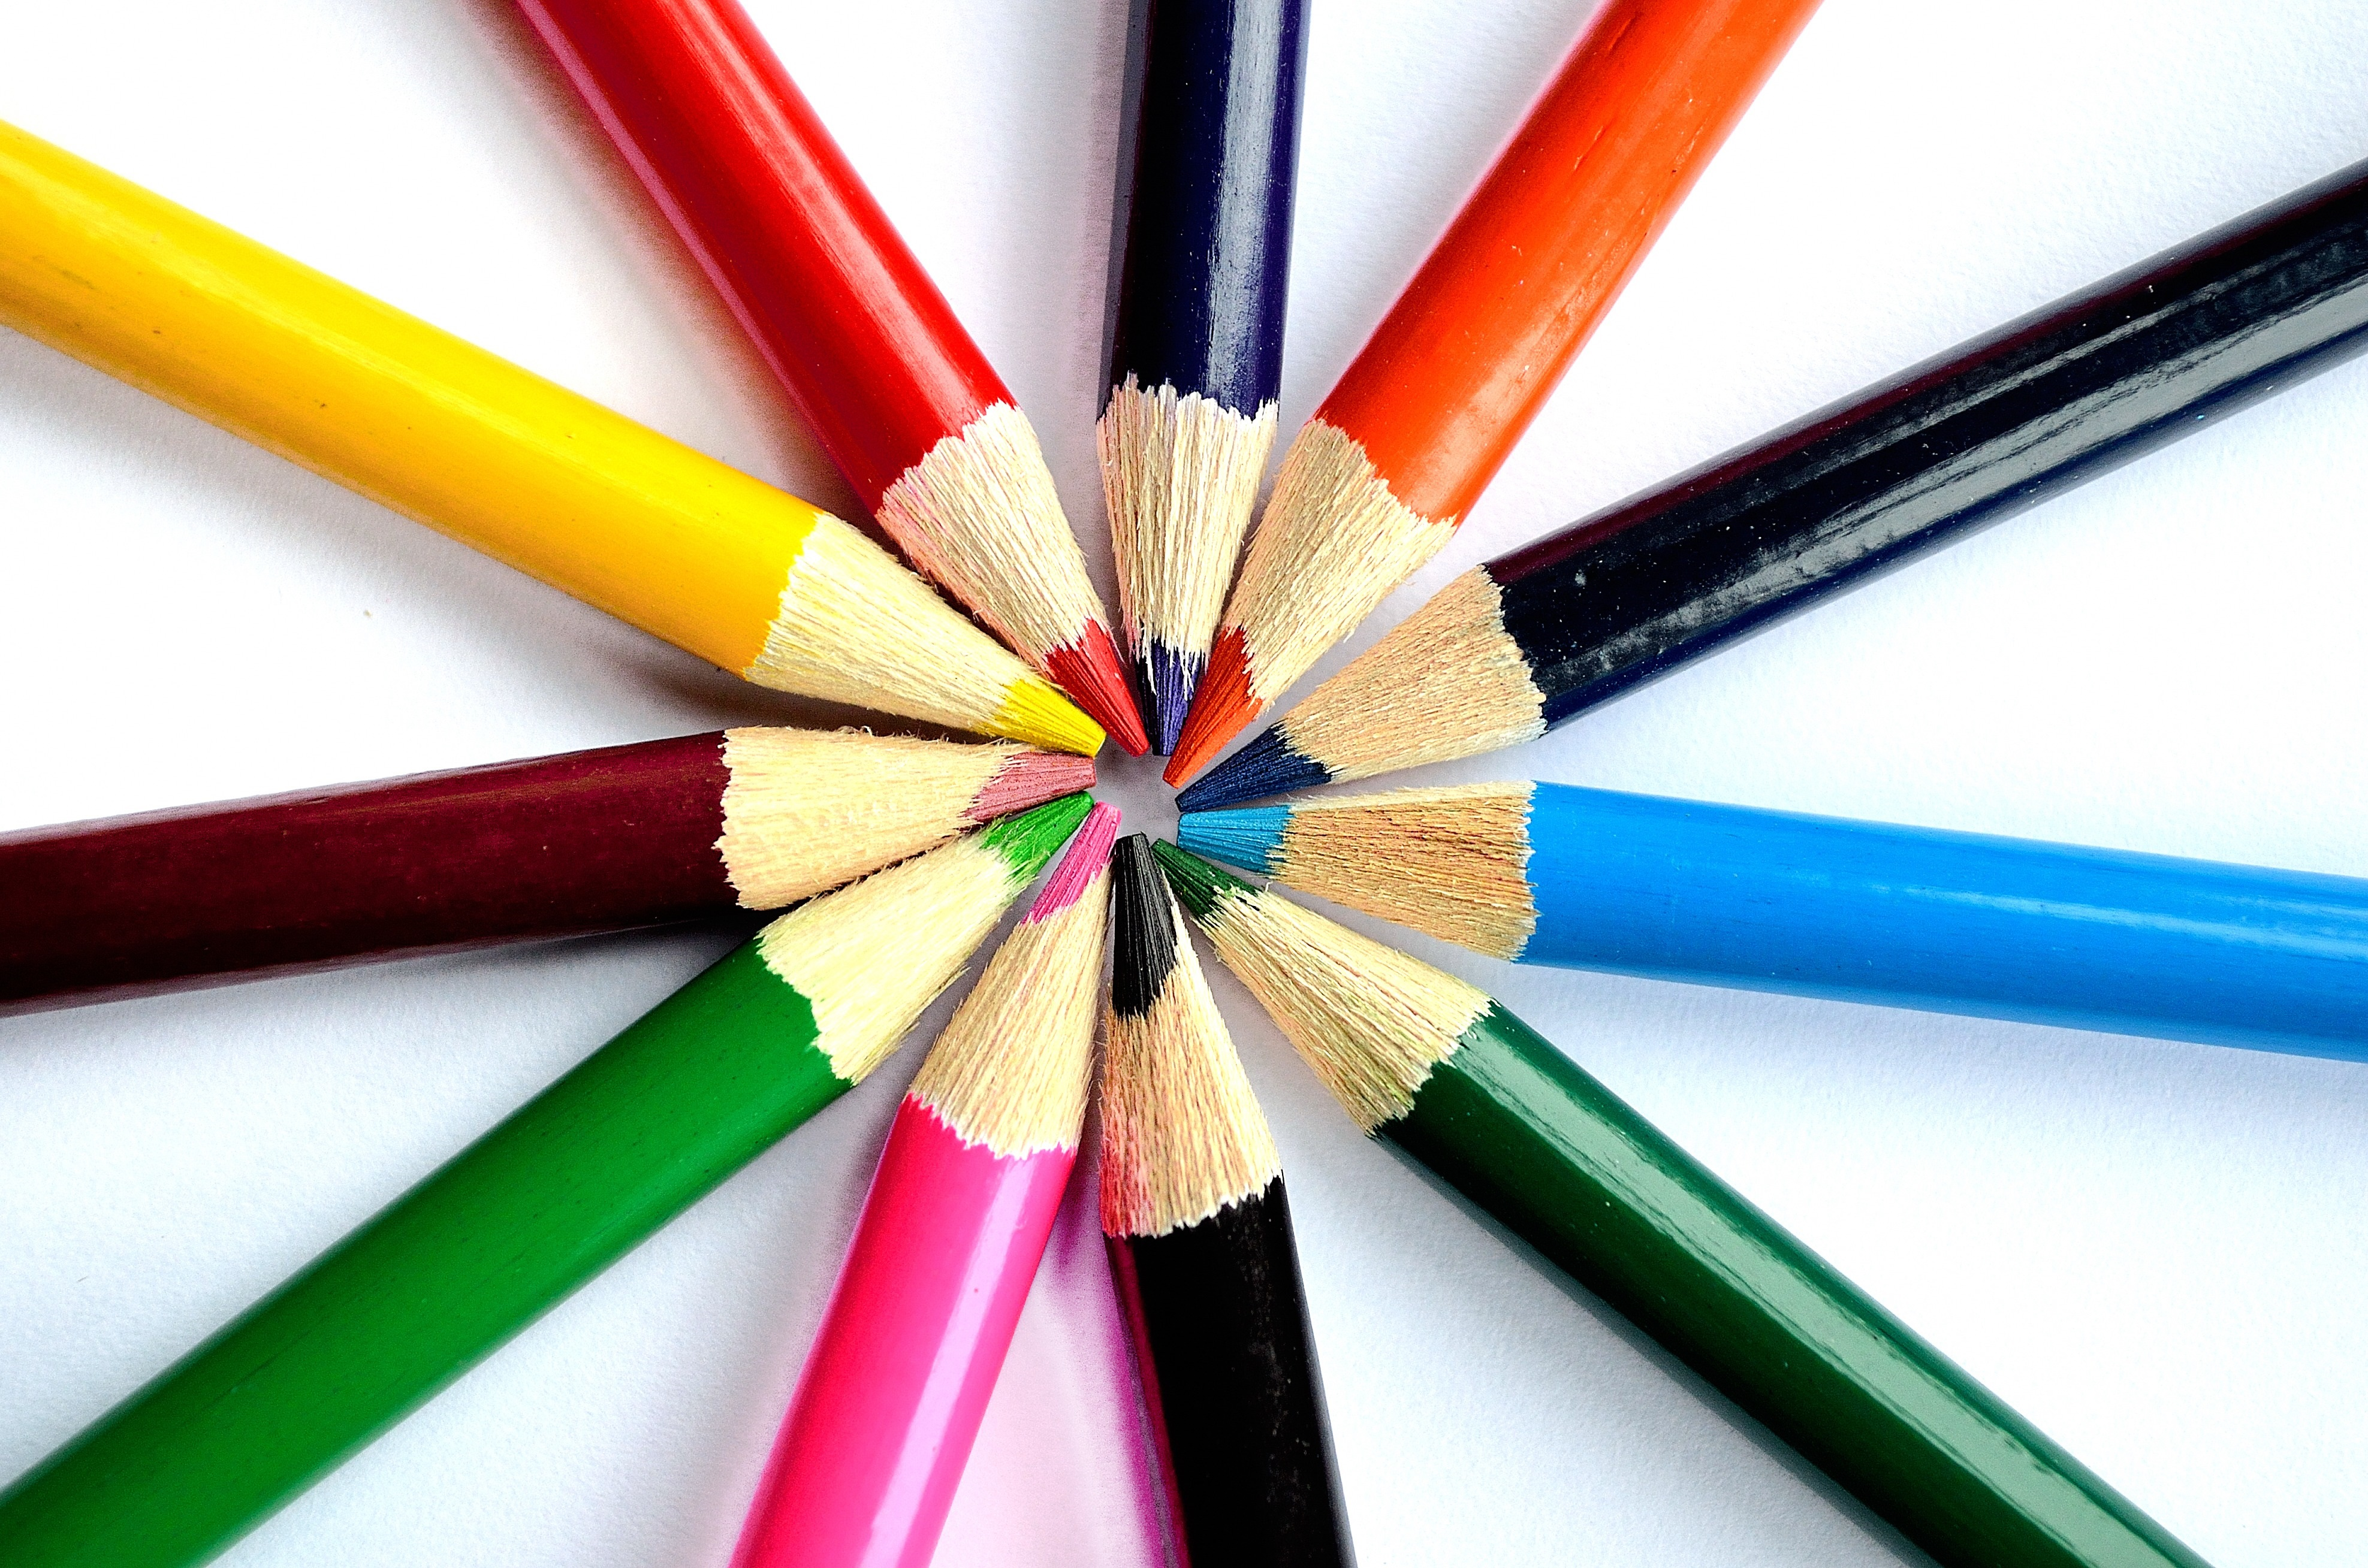 crayons_background_202621